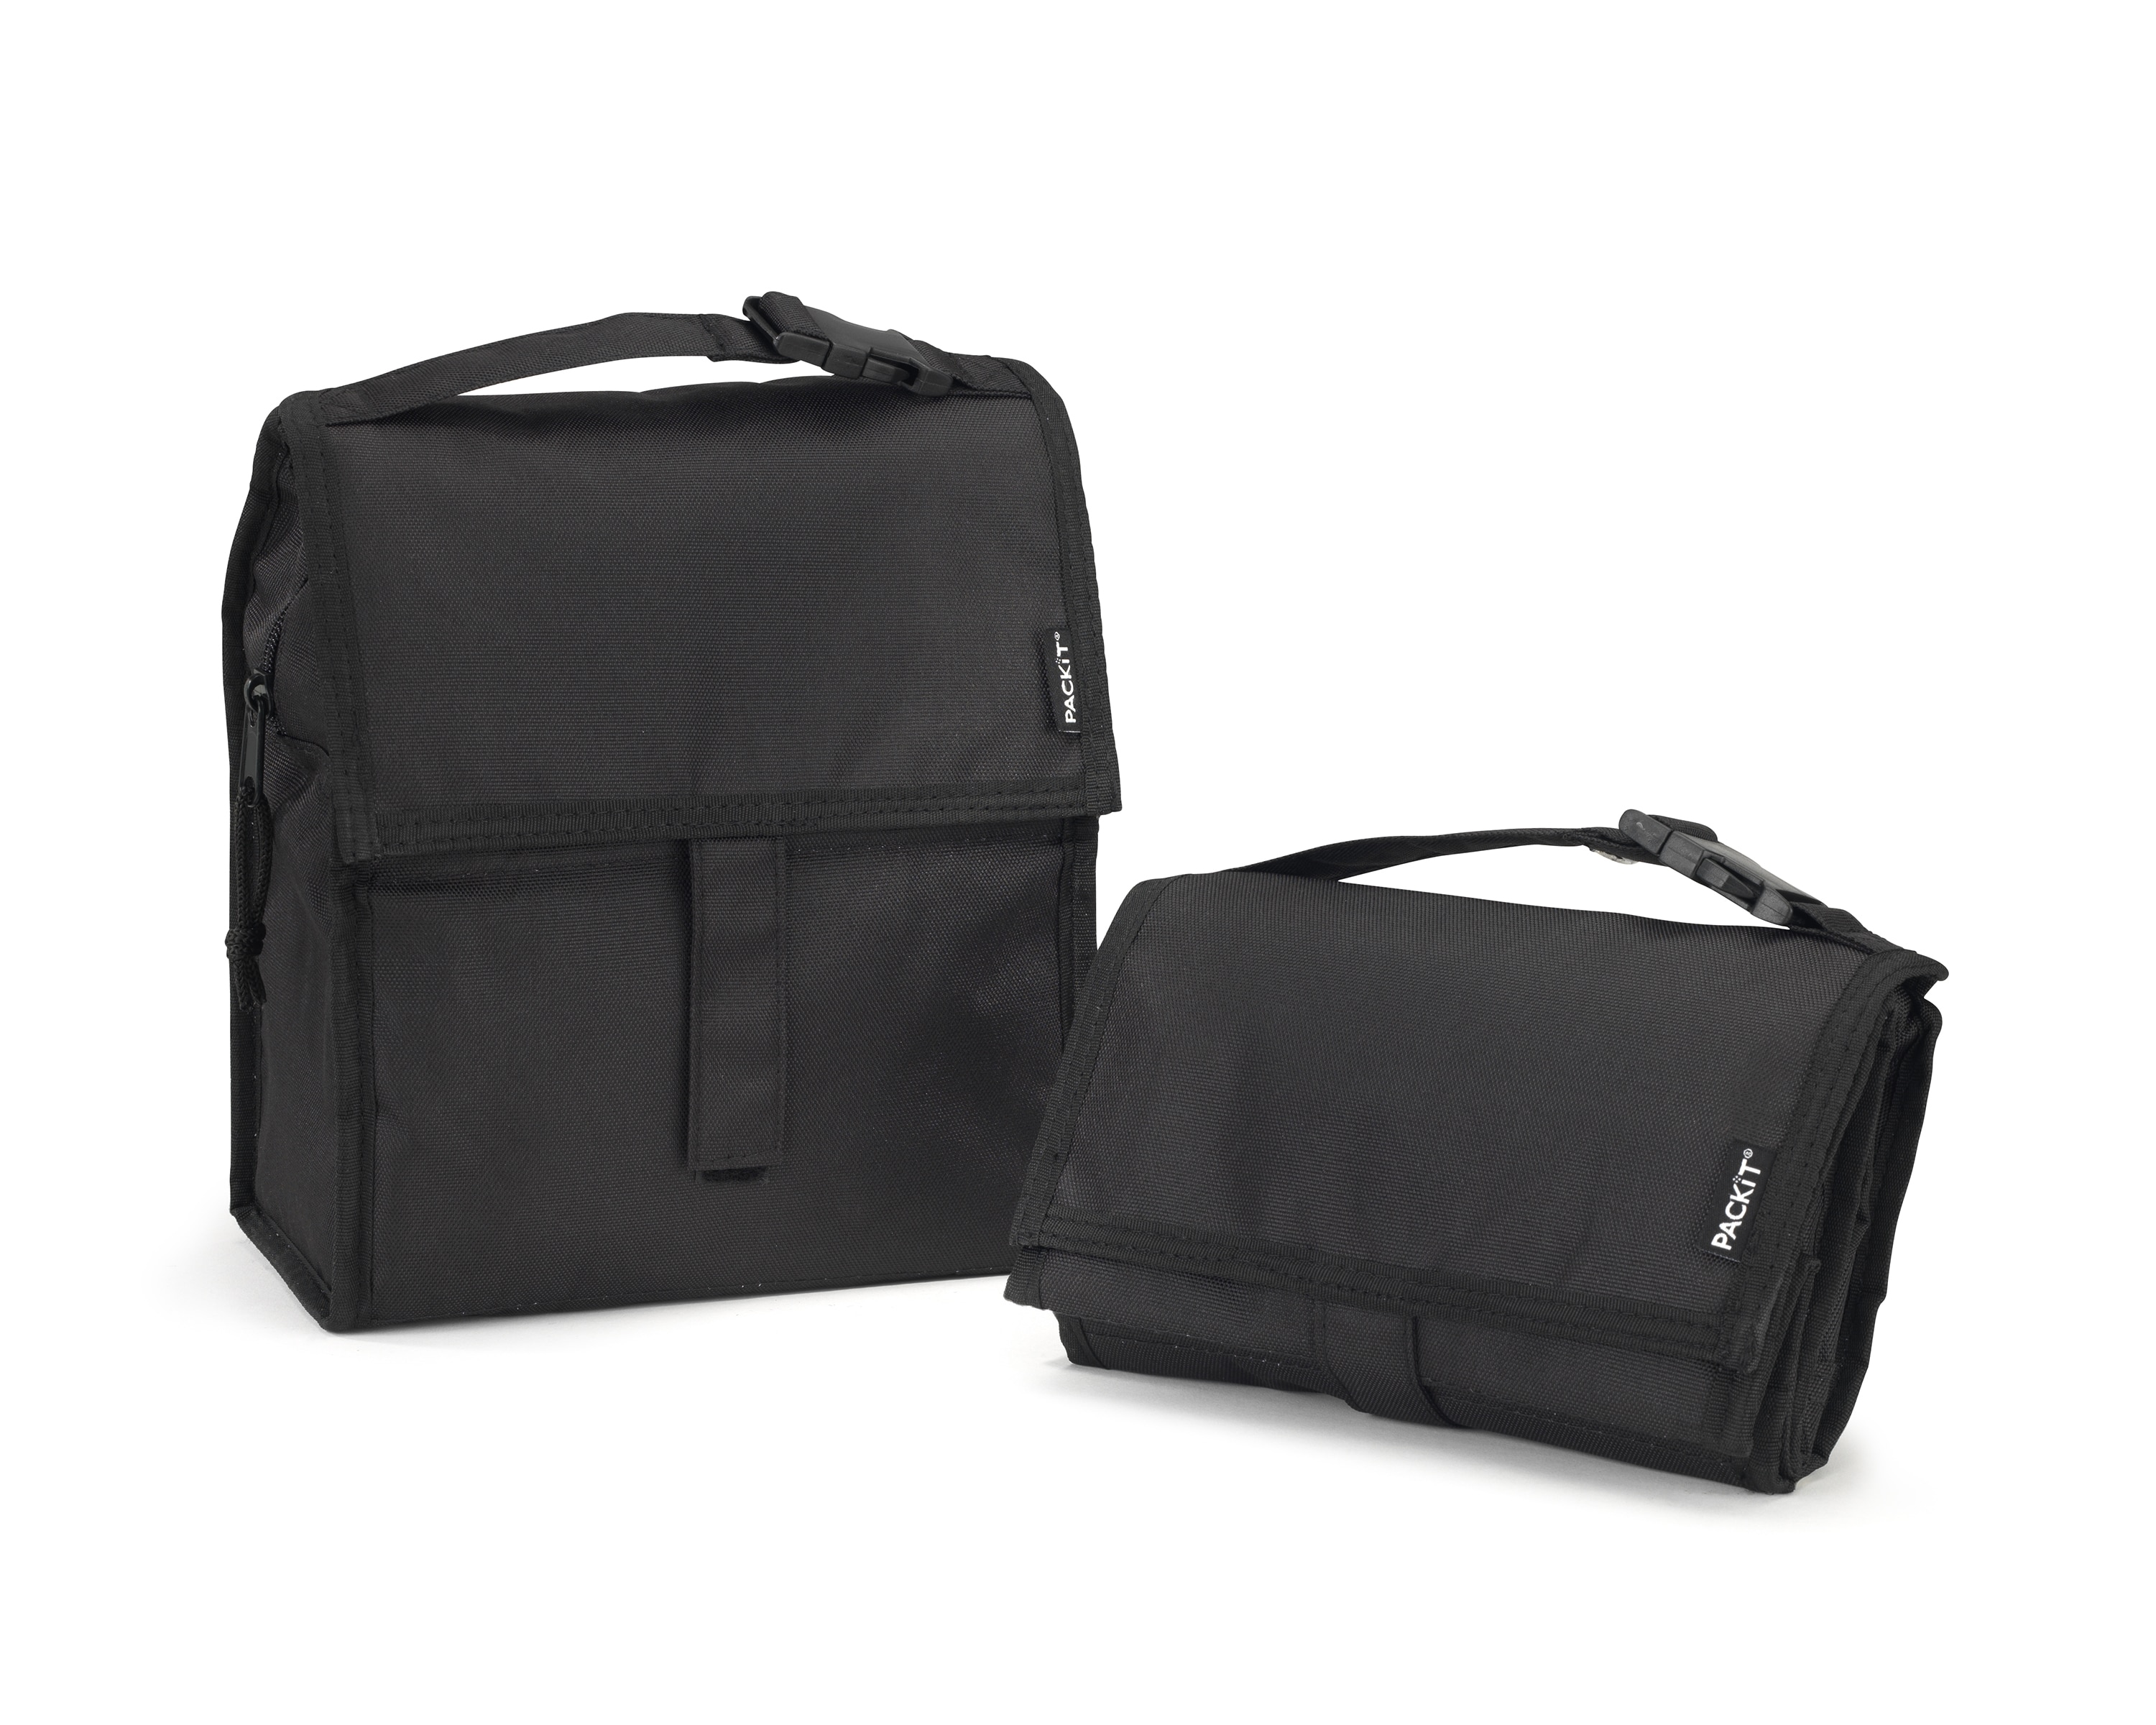 PACKiT Black Lunch Bag